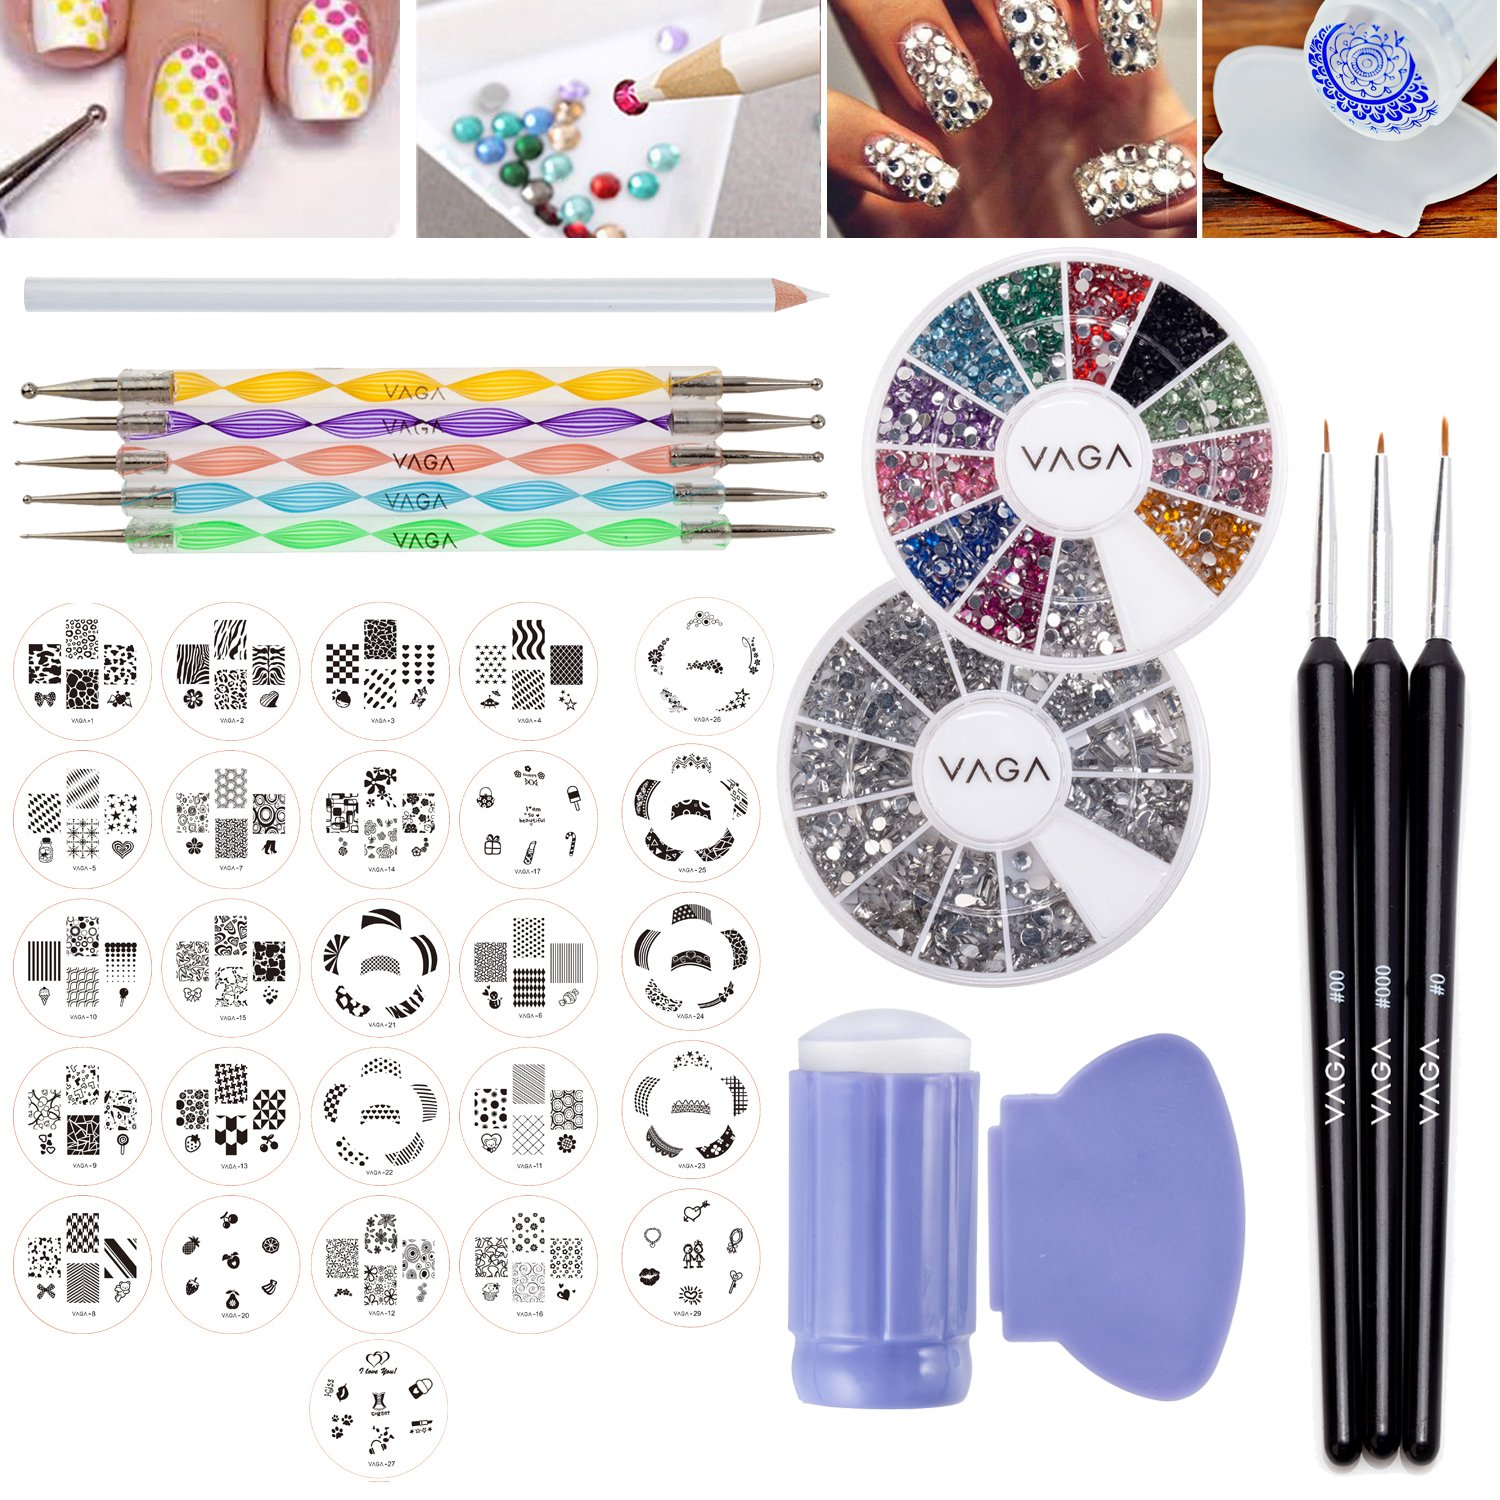 Amazing Value Professional Nail Art Designs Set With 26pcs Stamping Plates of Total 160 Patterns, Wheels of 1200 Silver Gemstones In Different Shapes And 1200 Crystals / Gems In 12 Different Colours, Stamper / Stamp, Scraper / Scraping Accessory, Dotters /